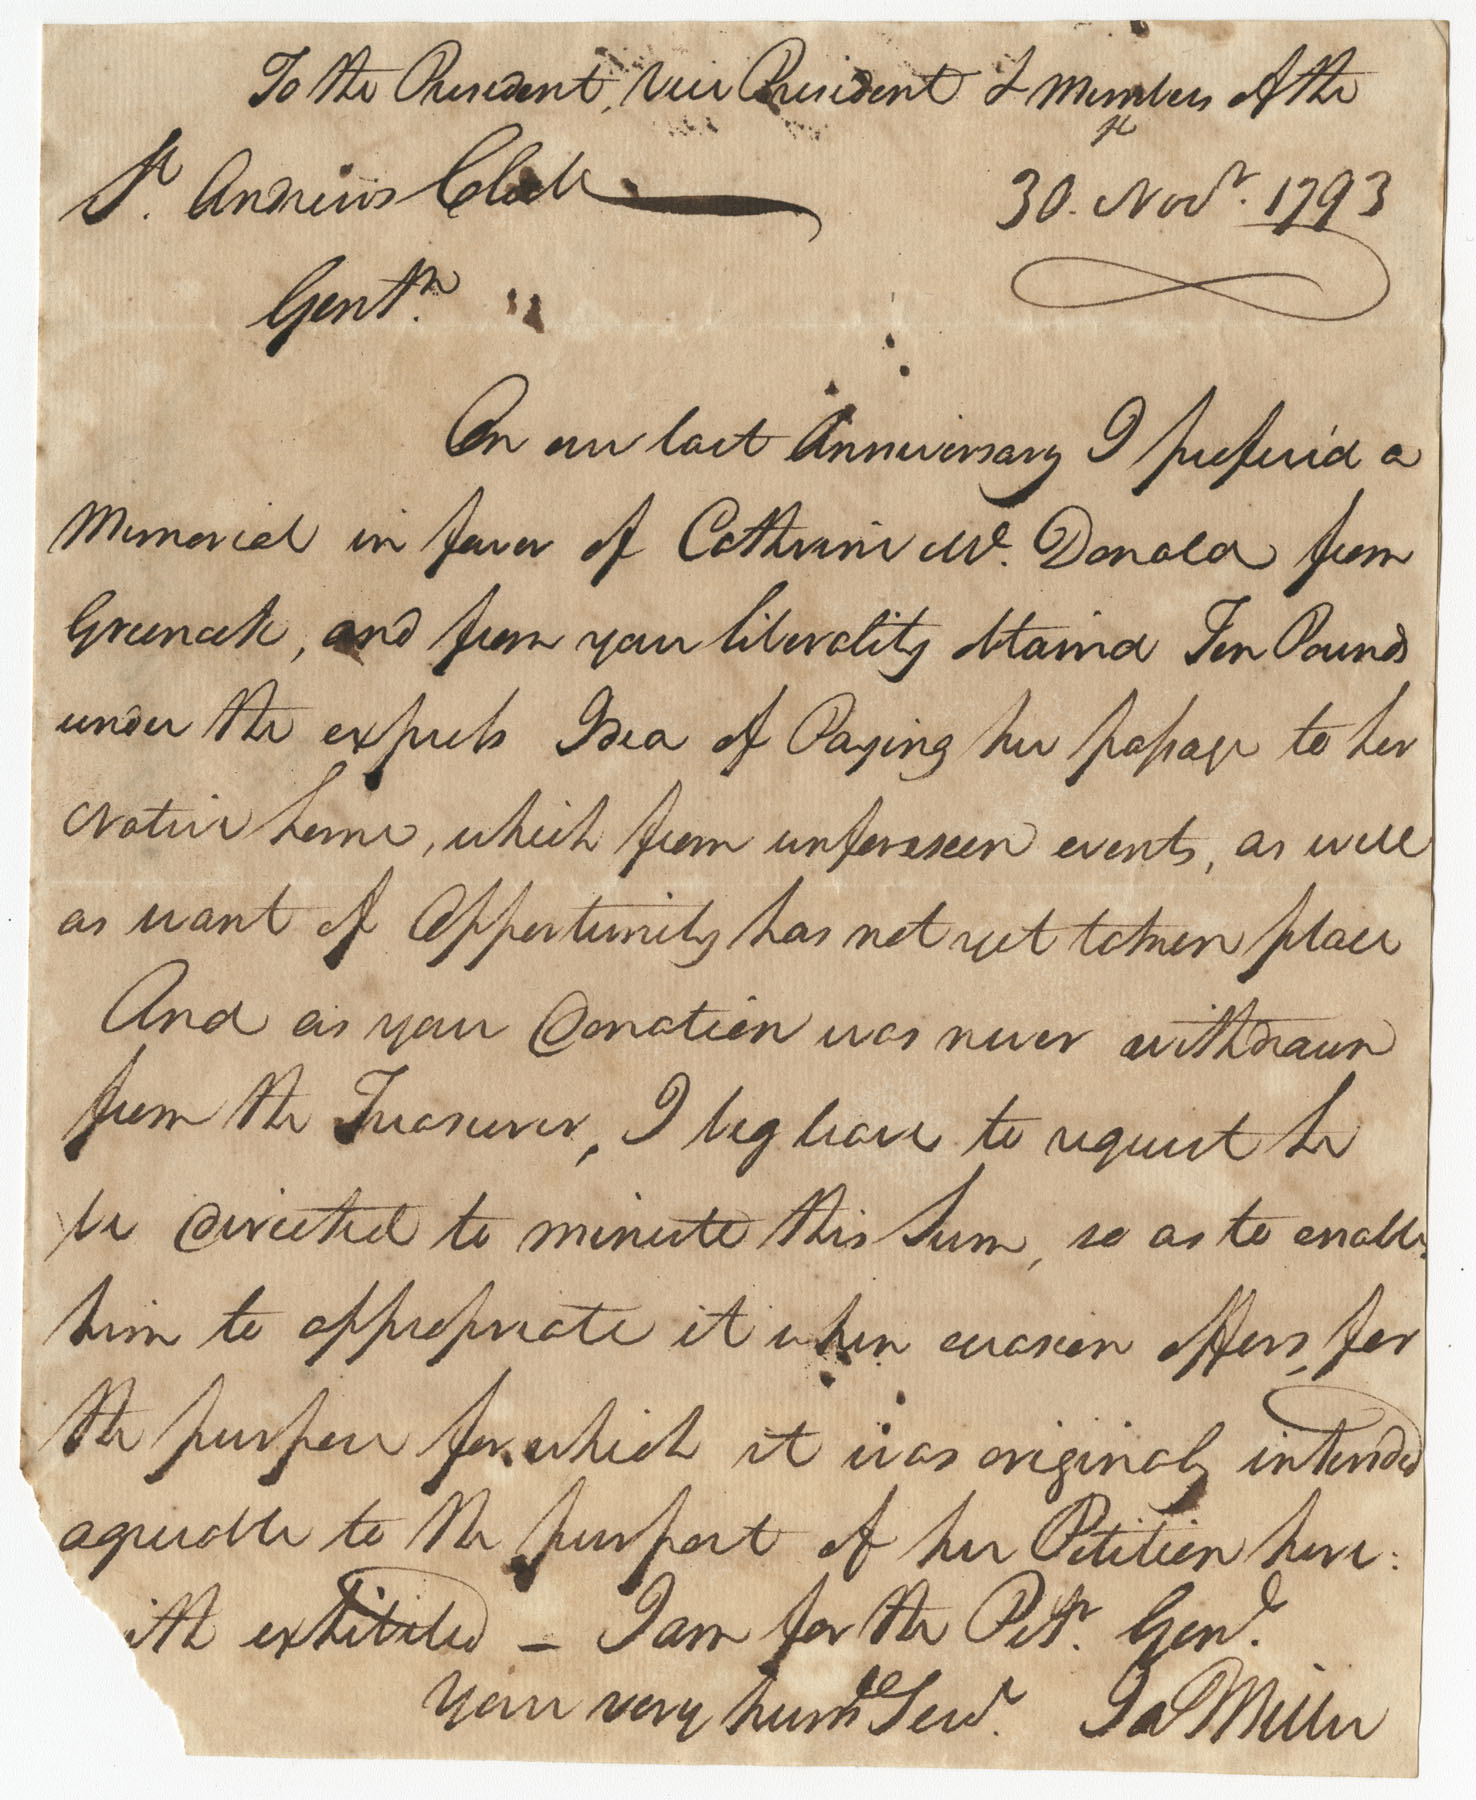 St. Andrew's Society note written by I. Miller